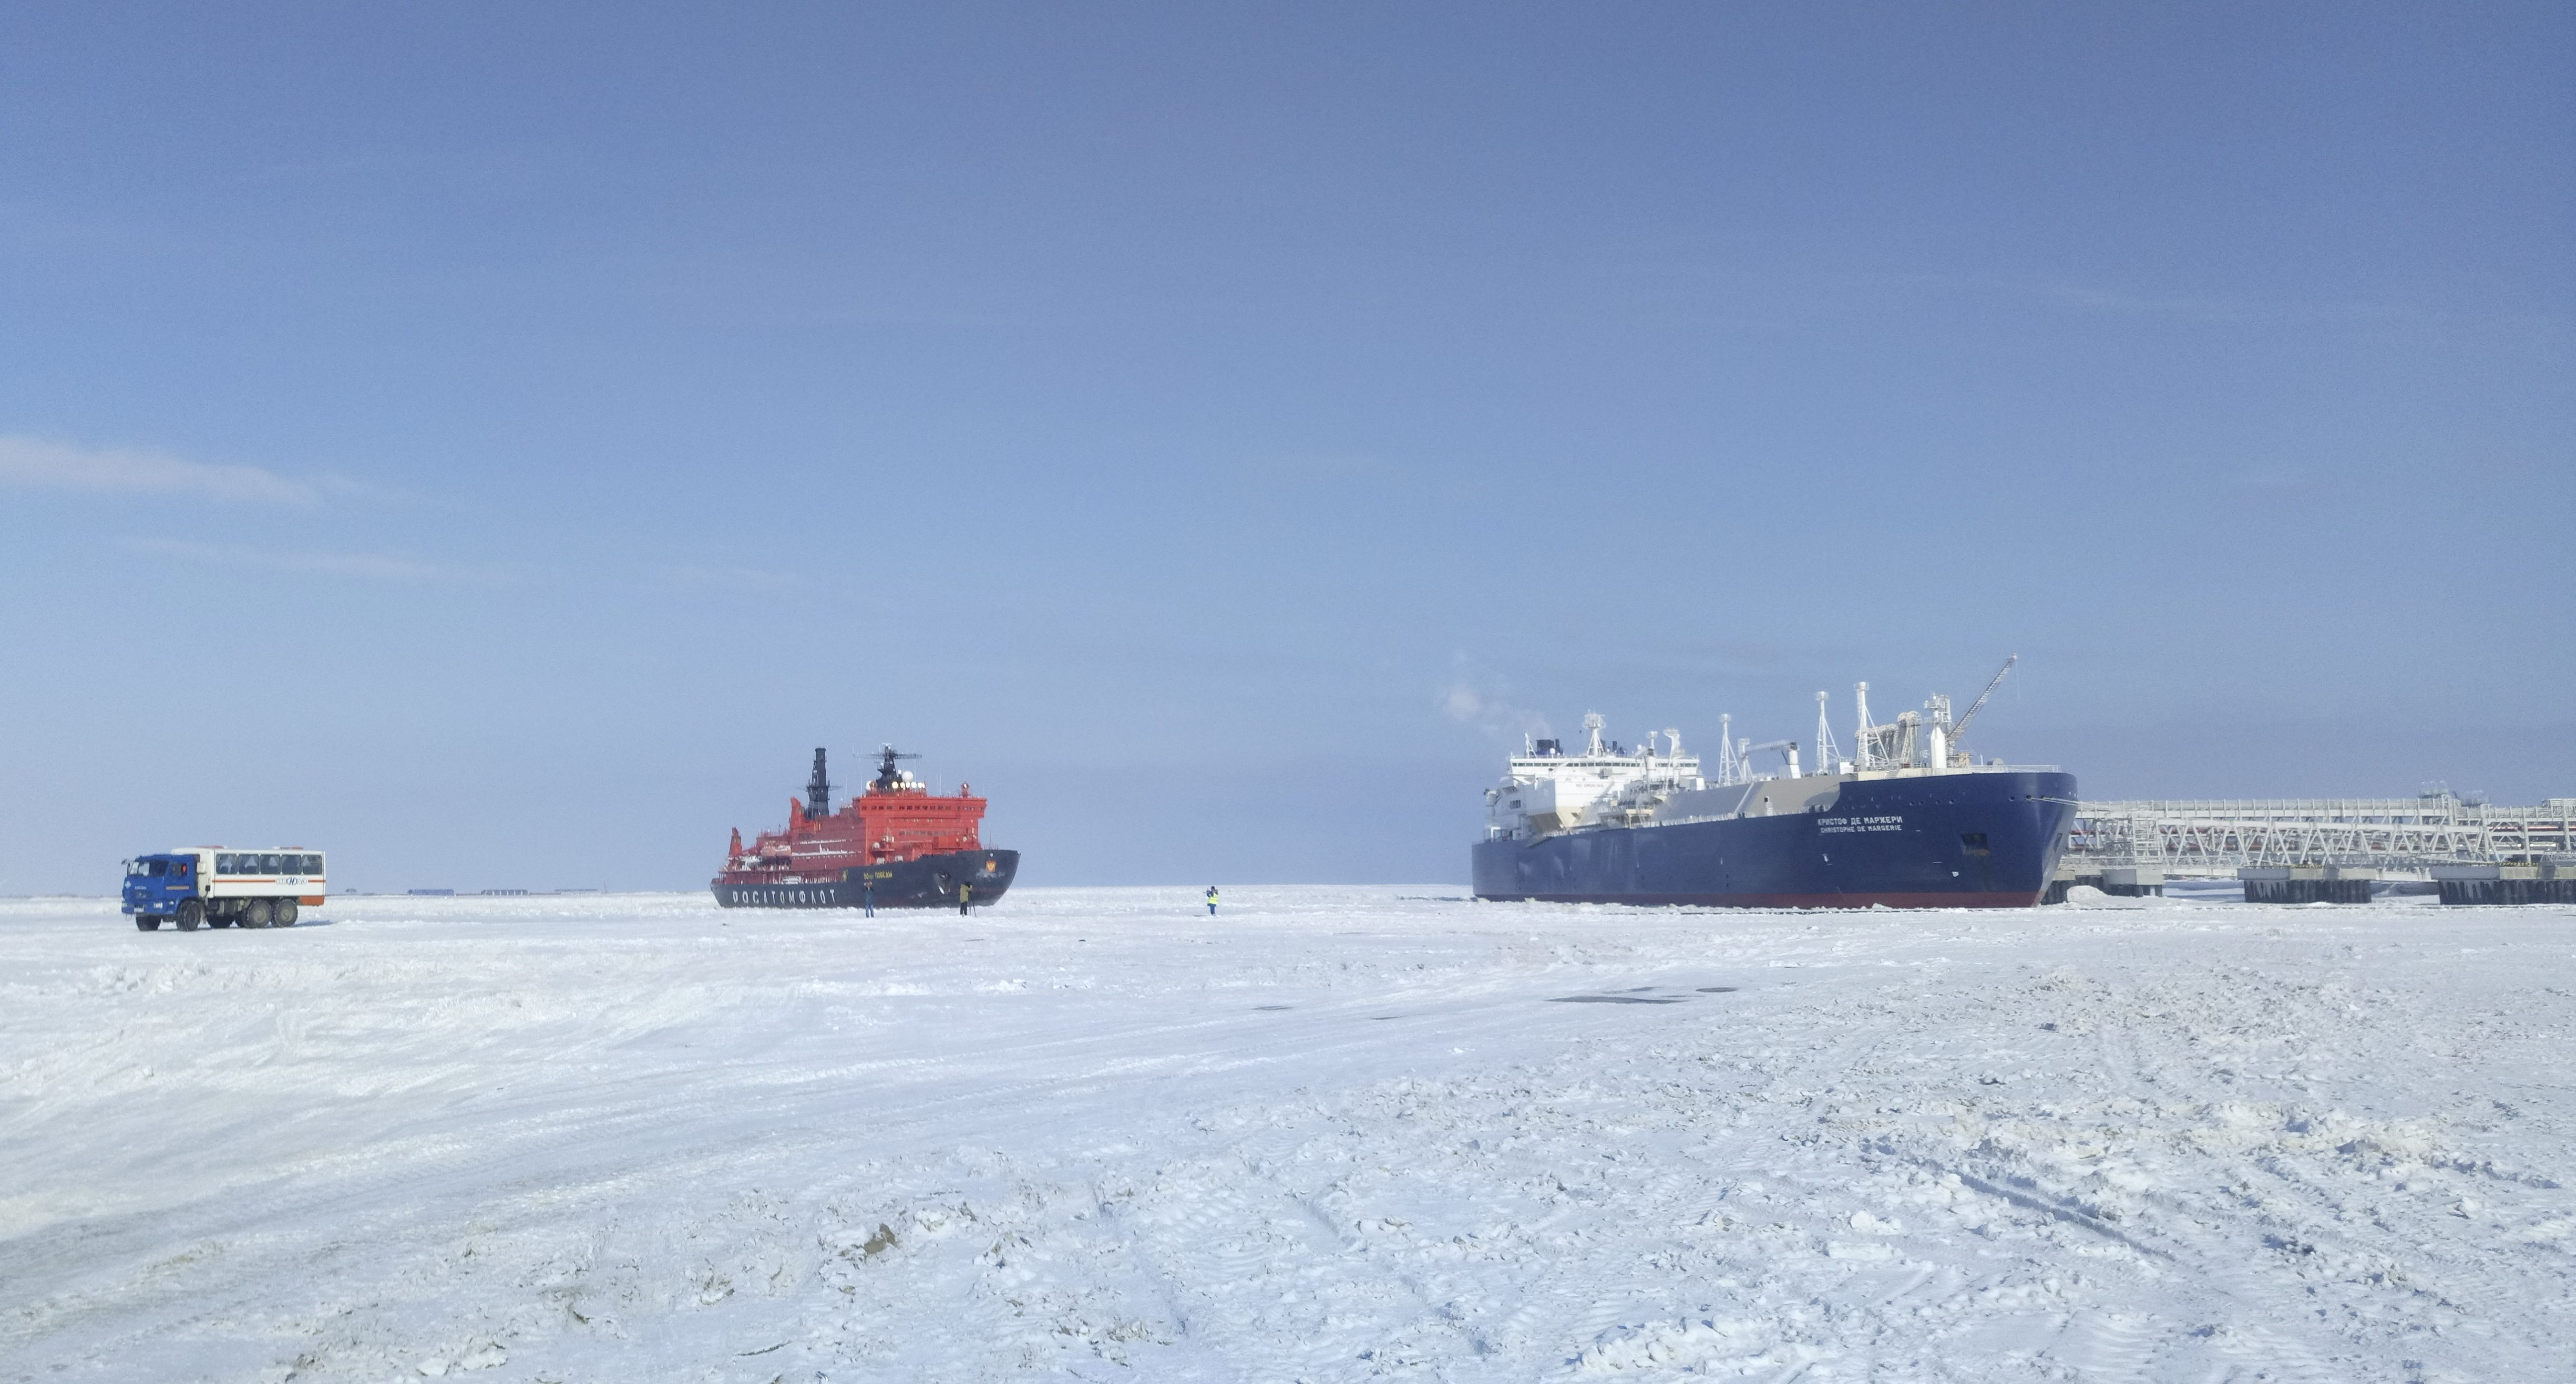 Russian icebreaker ships and LNG transport vessels cruise in the Arctic.